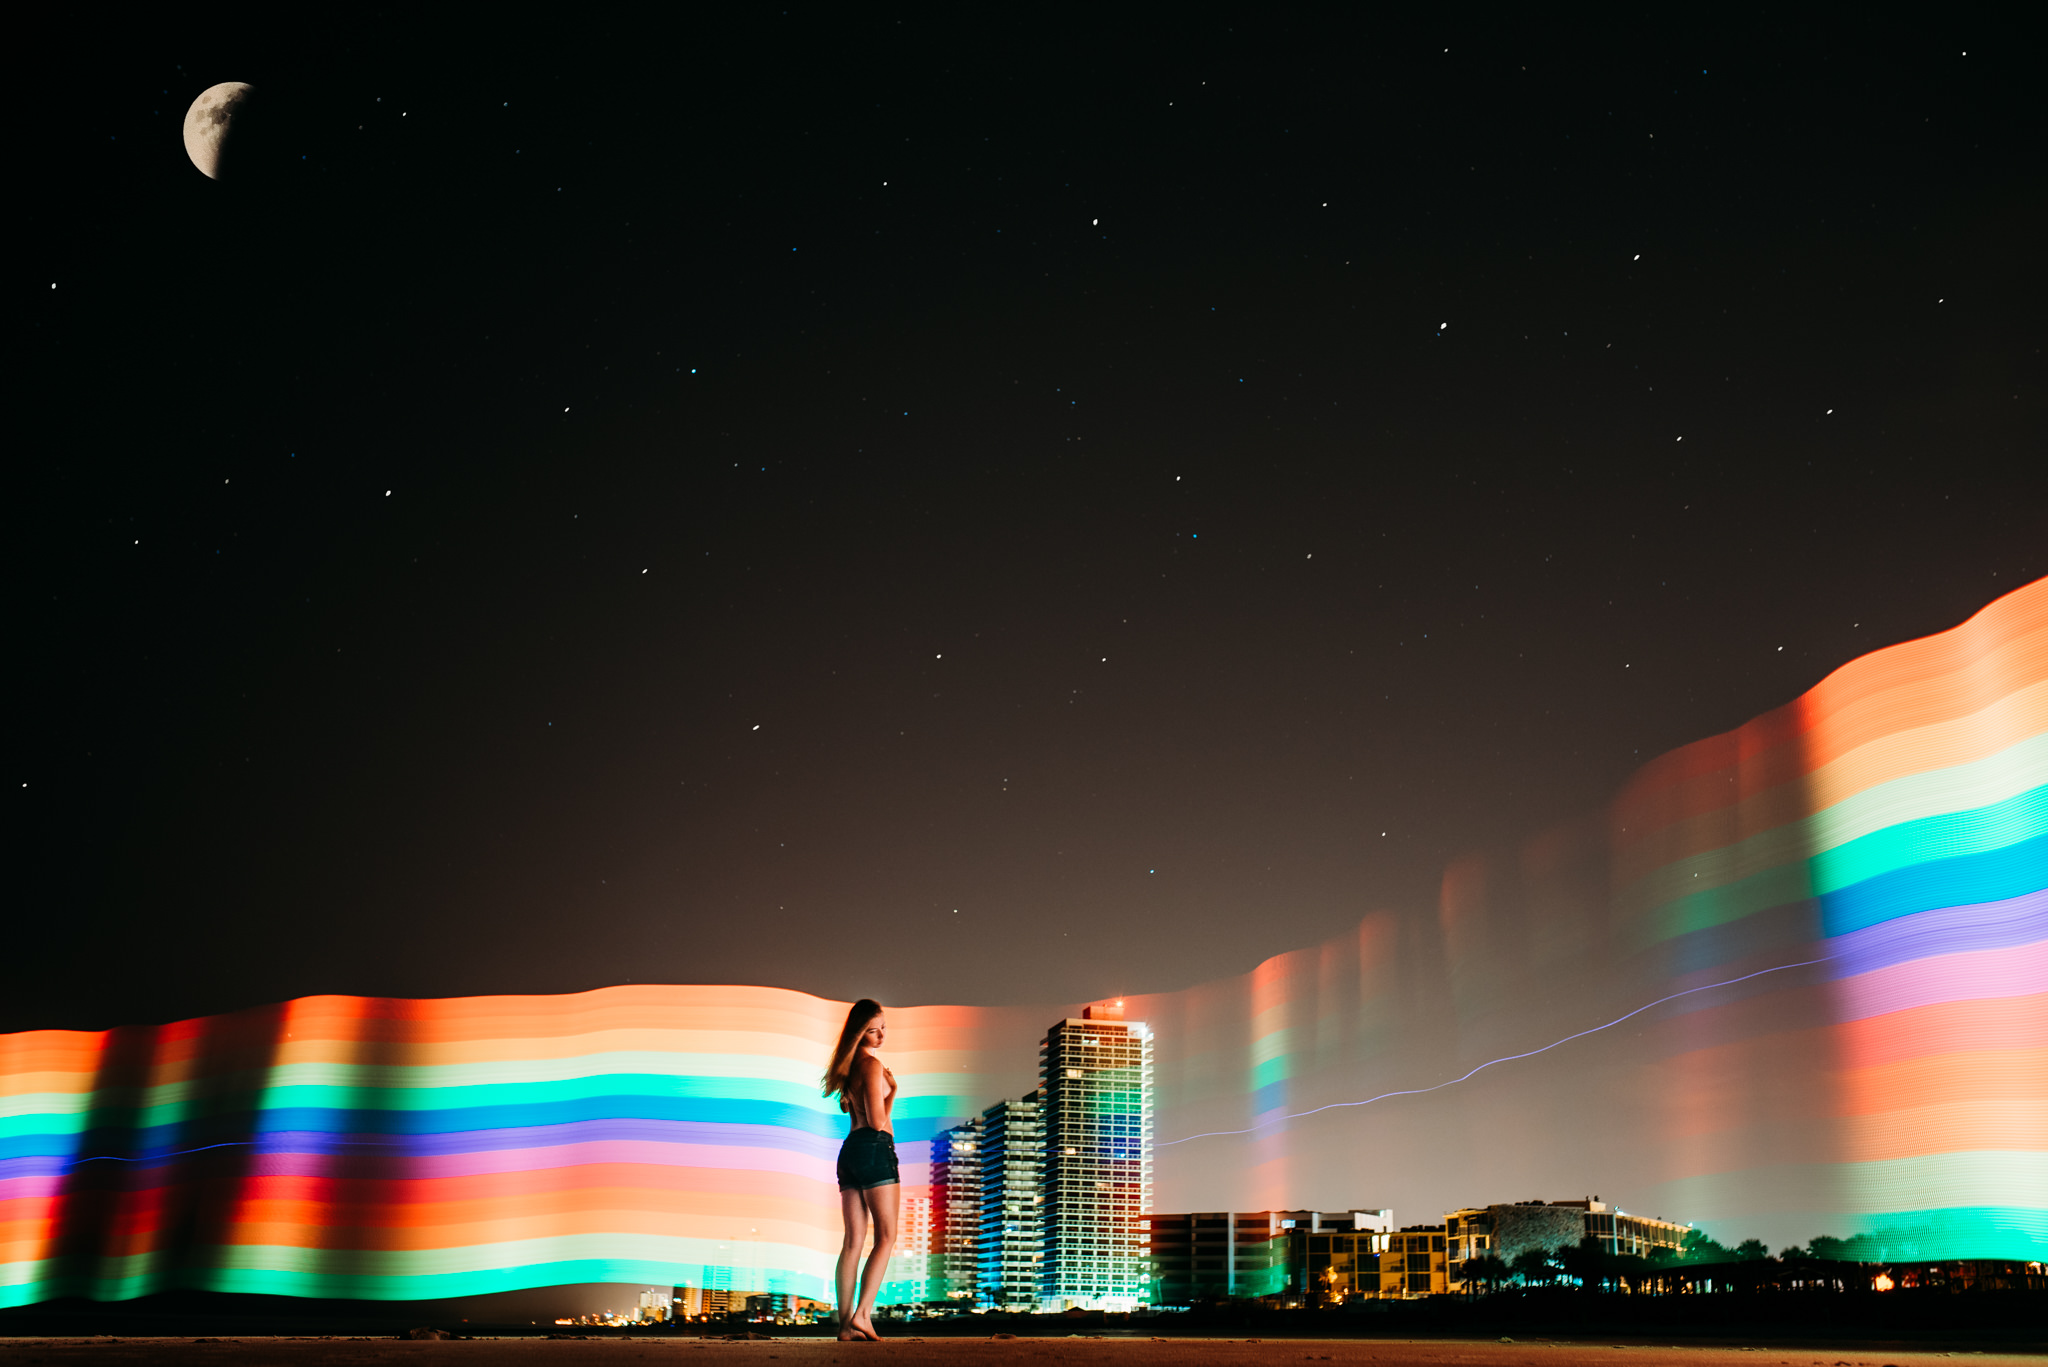 A woman is standing in front of a city with skyscrapers and the Celestial Preset adds a rainbow to the background.